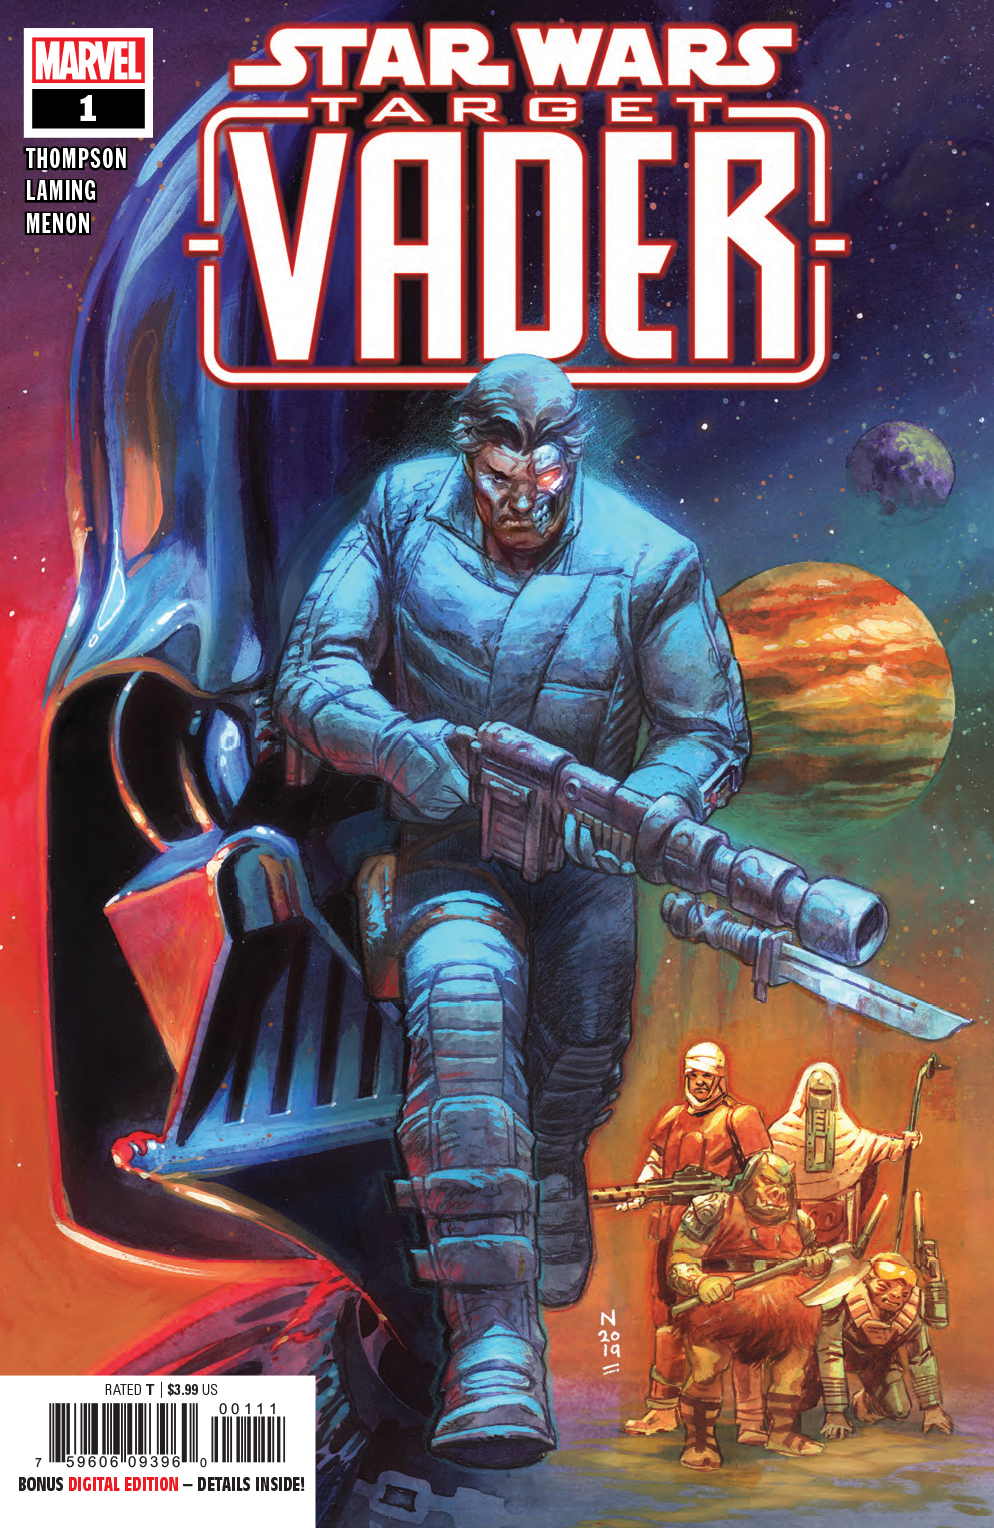 73755bd1cd21 MAY190928 - STAR WARS TARGET VADER #1 (OF 6) - Previews World